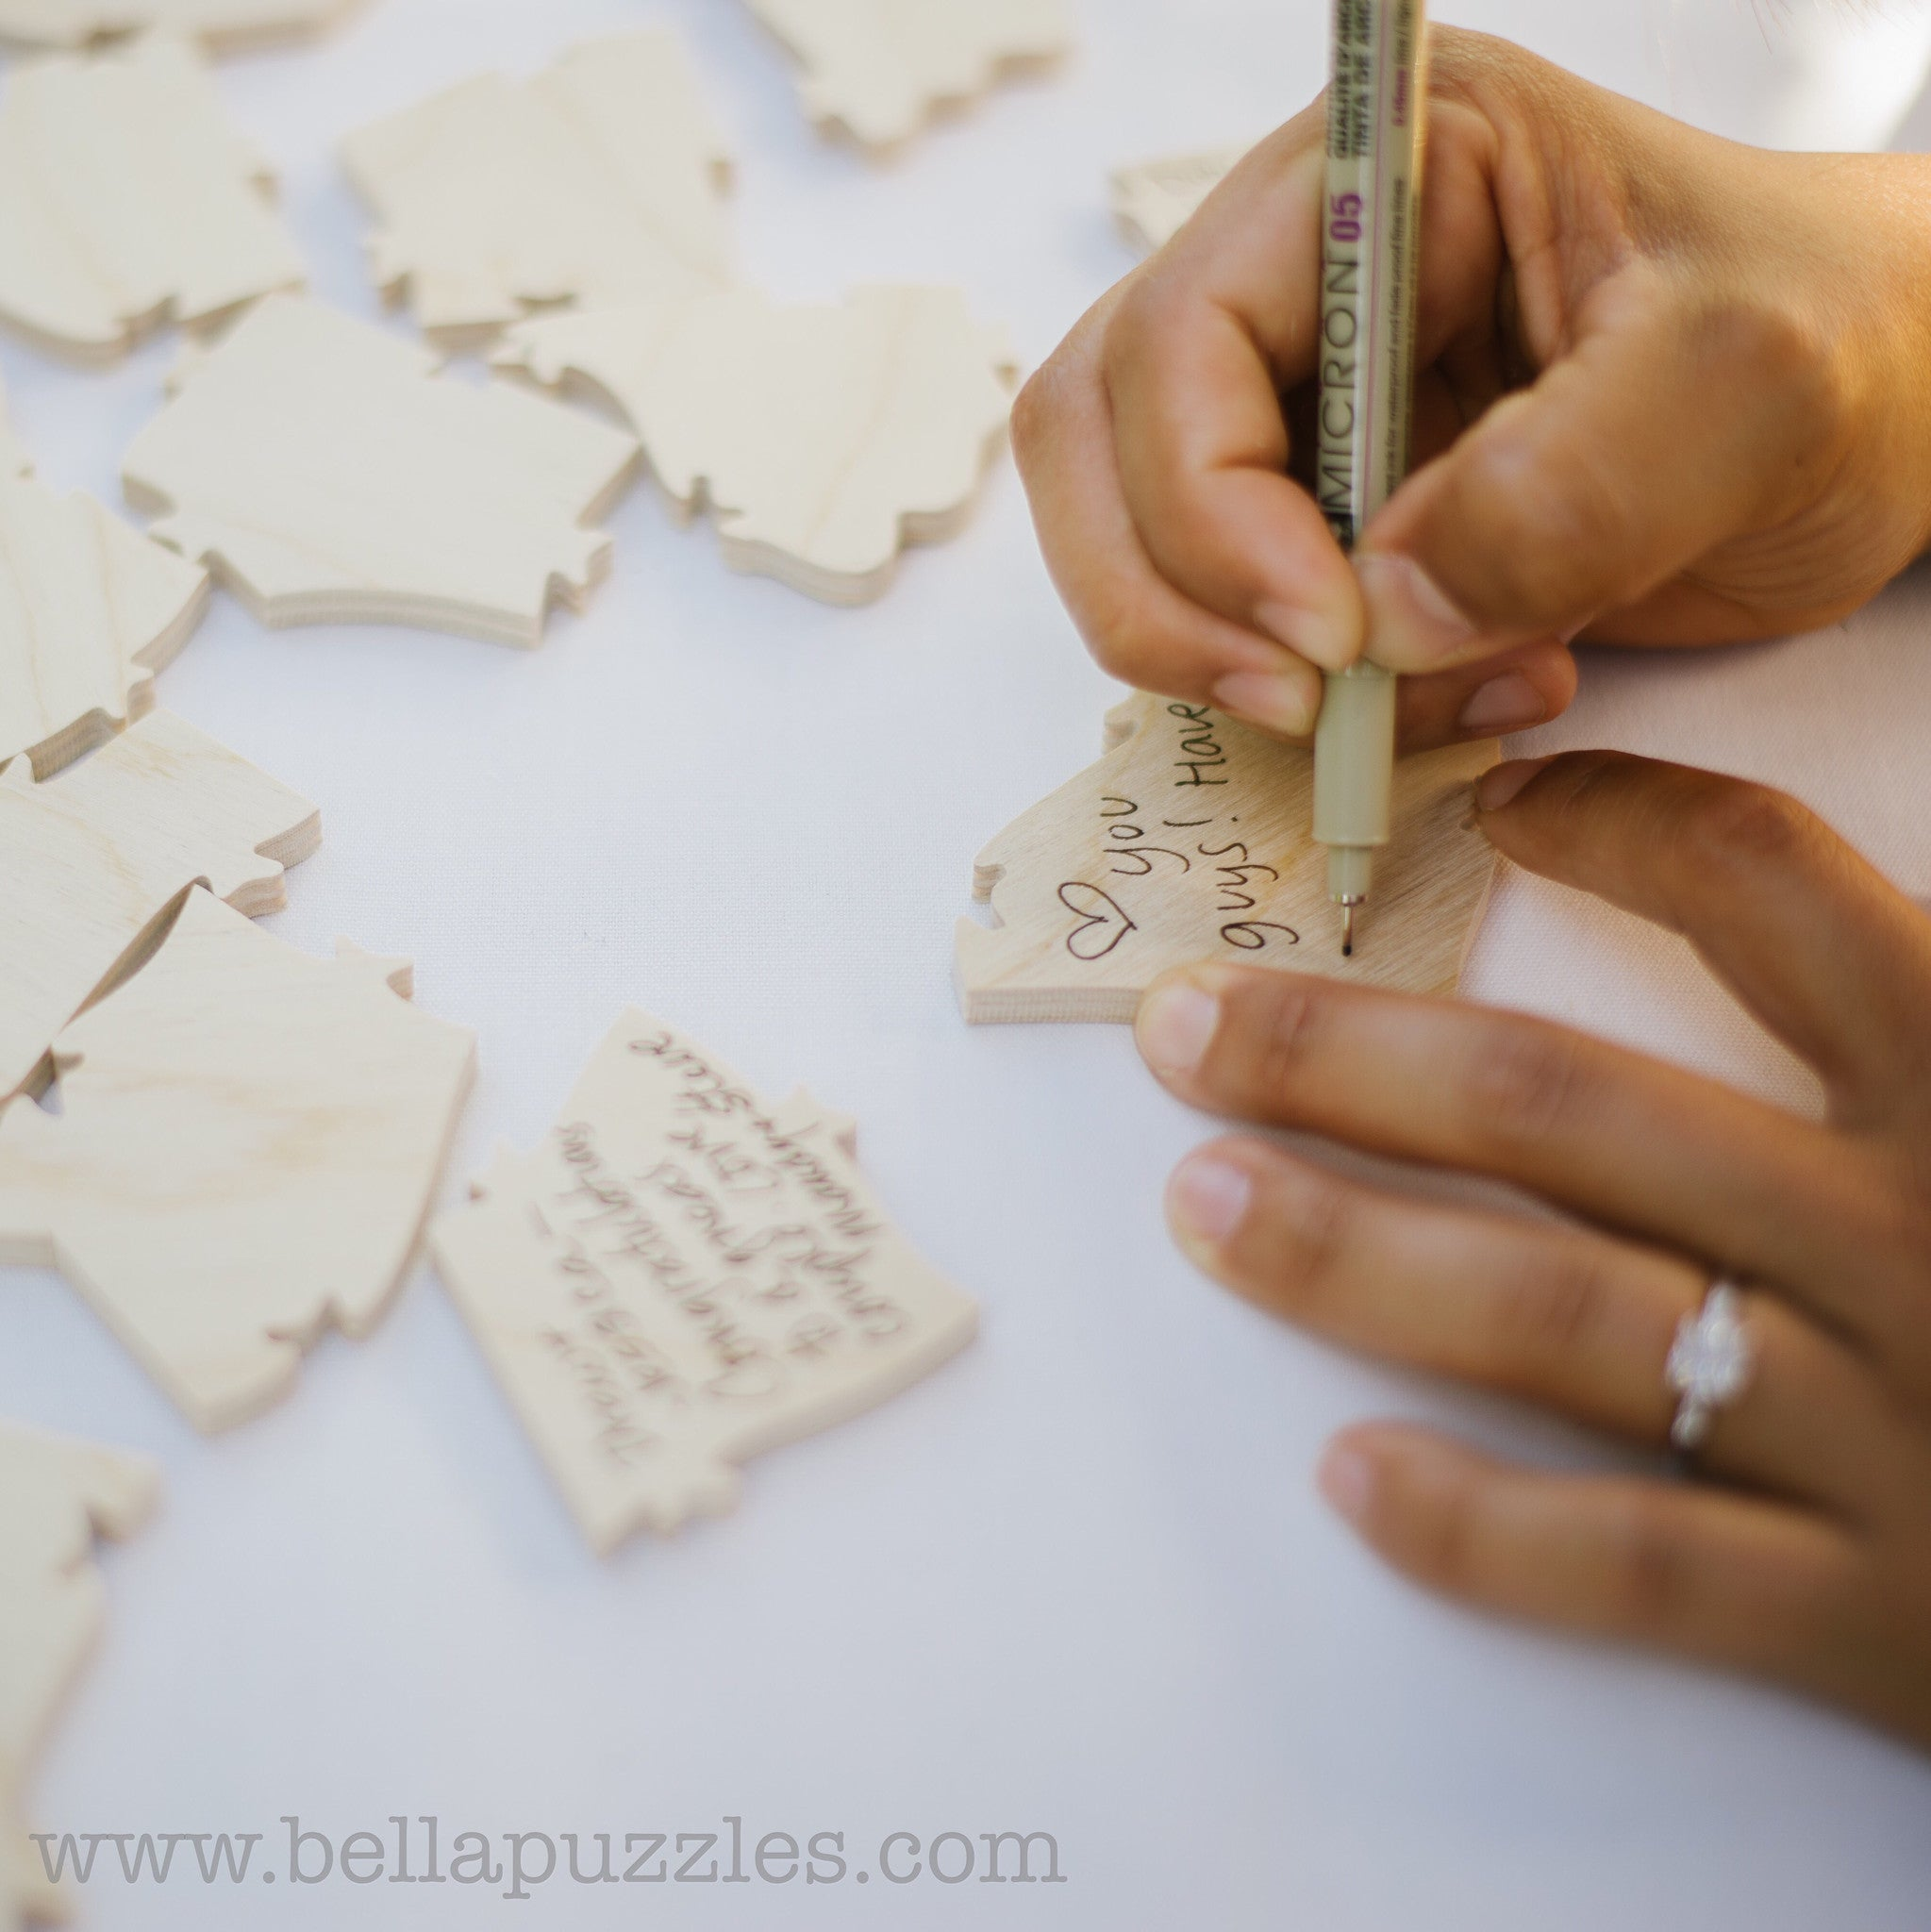 Woman signing a puzzle piece from a wooden guestbook puzzle made by BELLA PUZZLES. Guestbook puzzles are growing very popular for weddings, mitzvahs, showers, and other occasions. Made by BELLA PUZZLES.